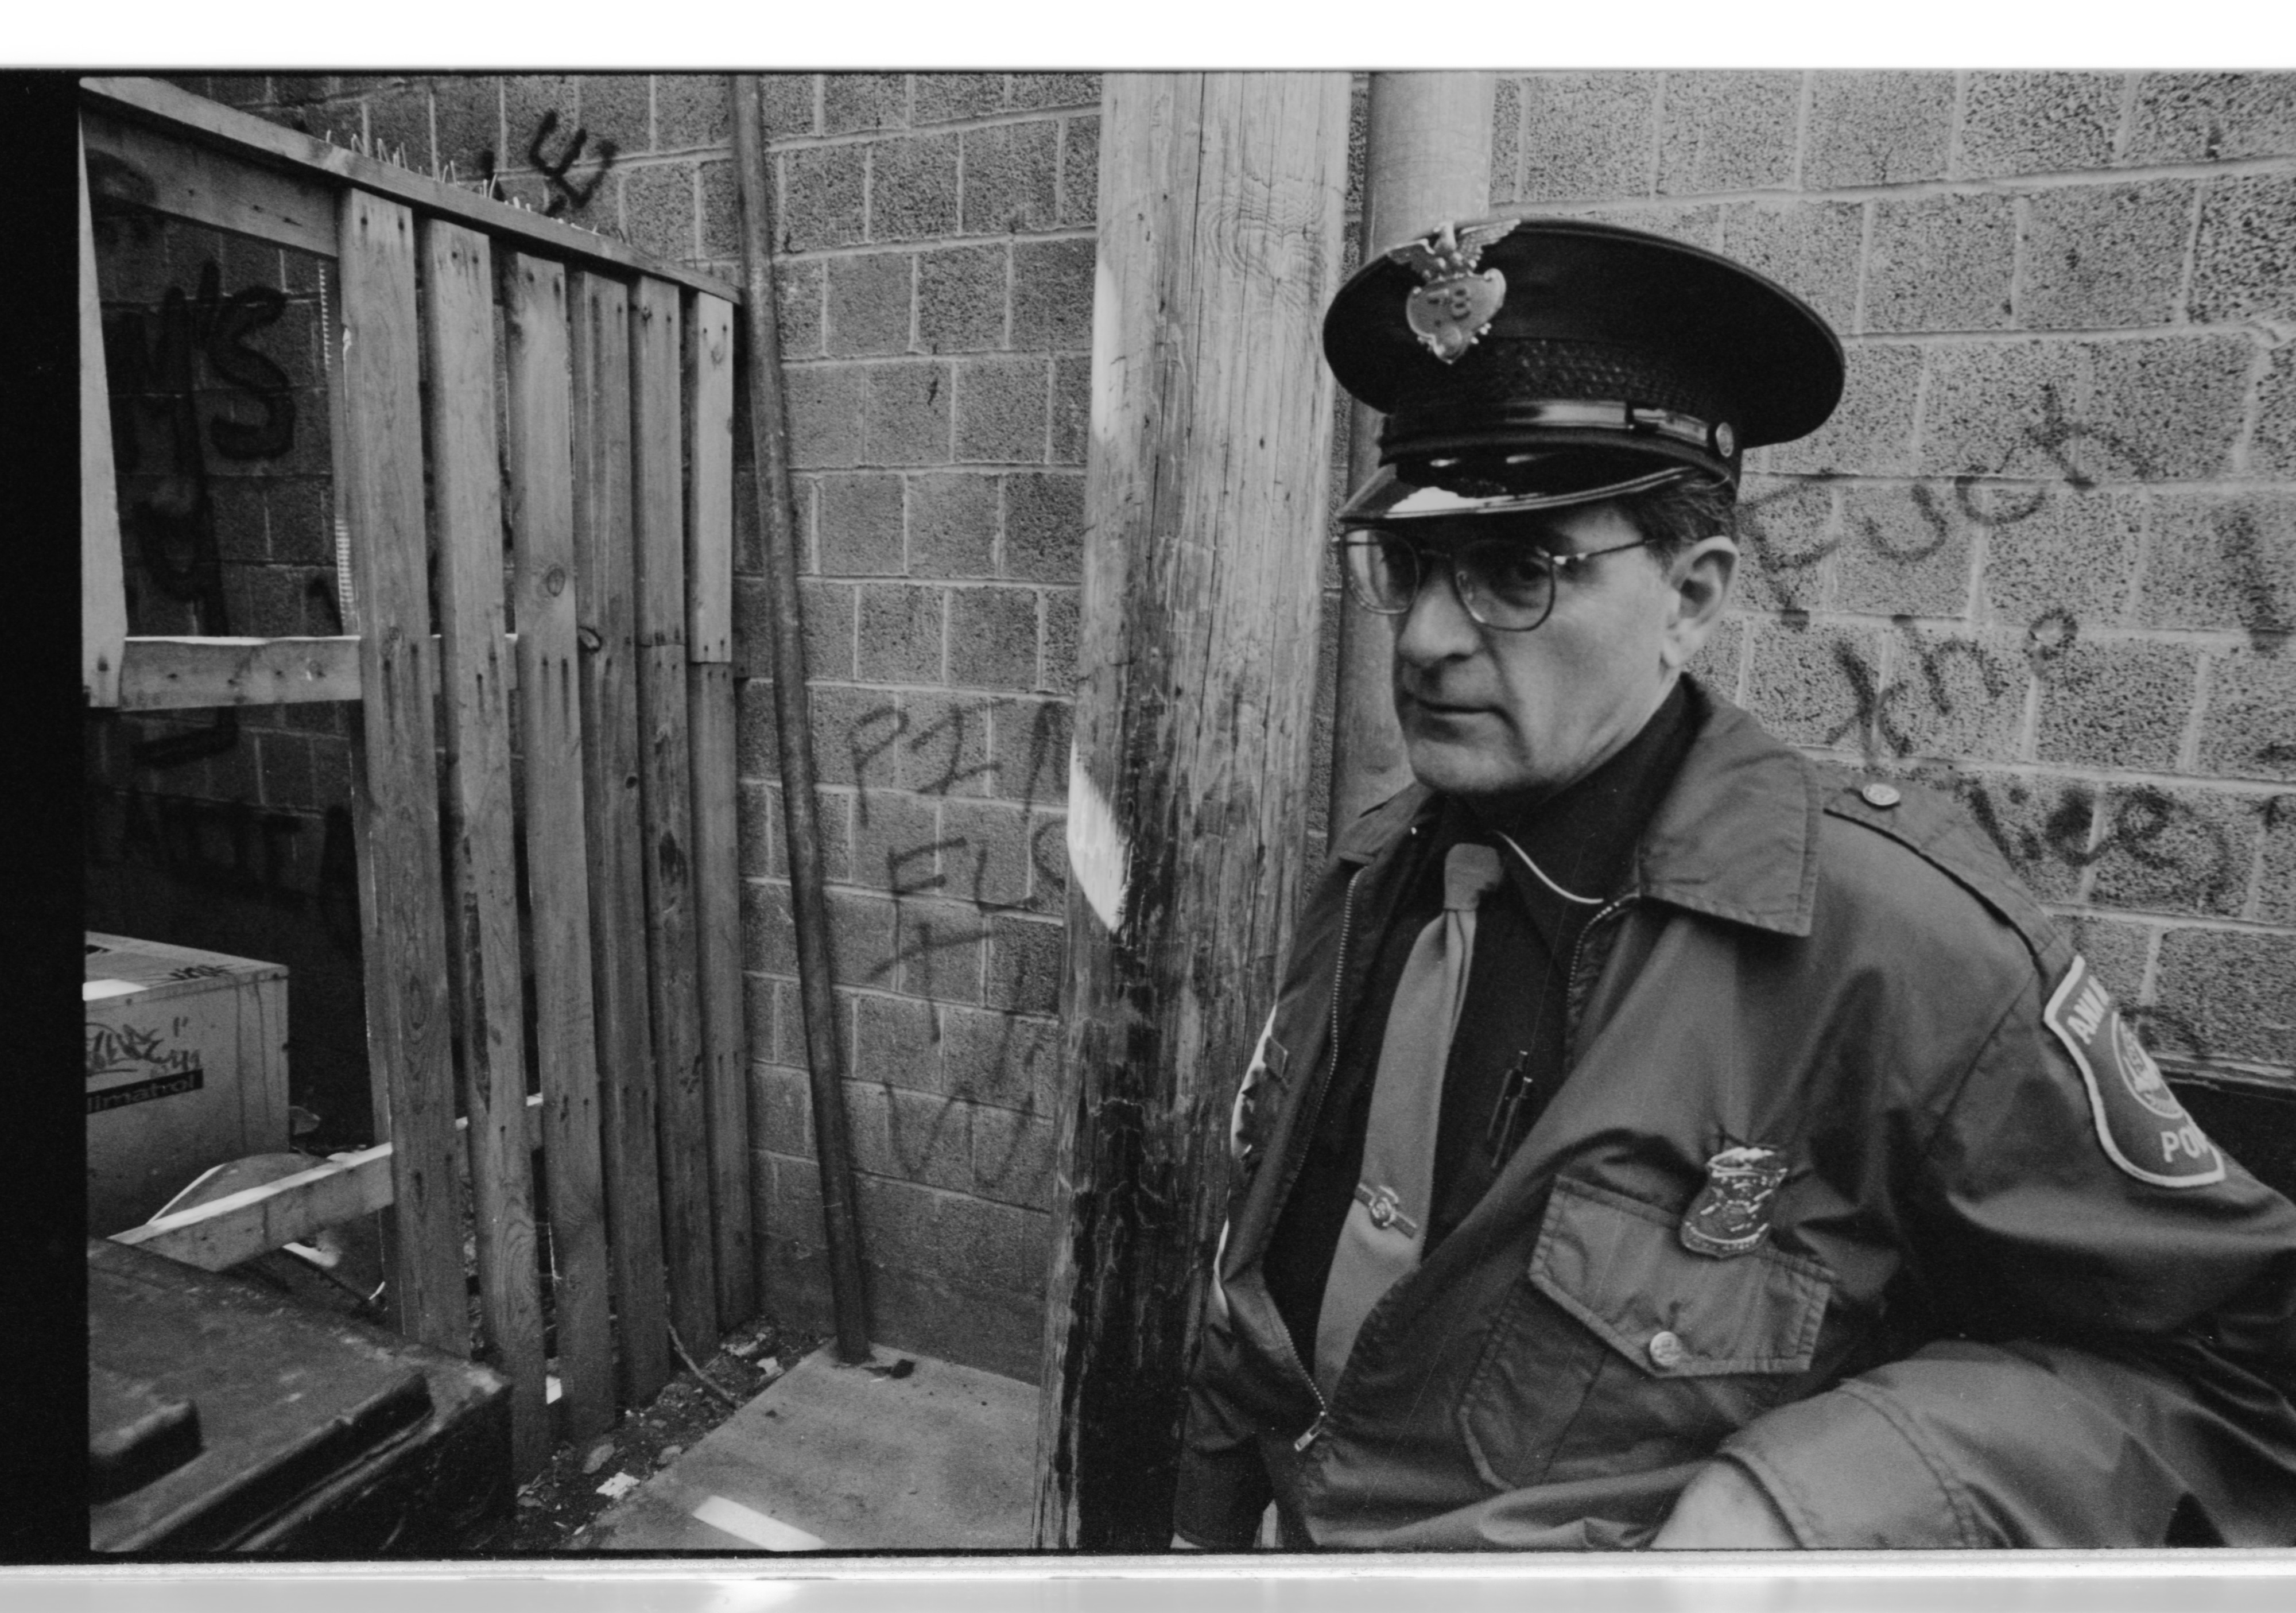 Downtown Ann Arbor Beat Cop Phil LaVigne Checks Out An Alley, October 1991 image